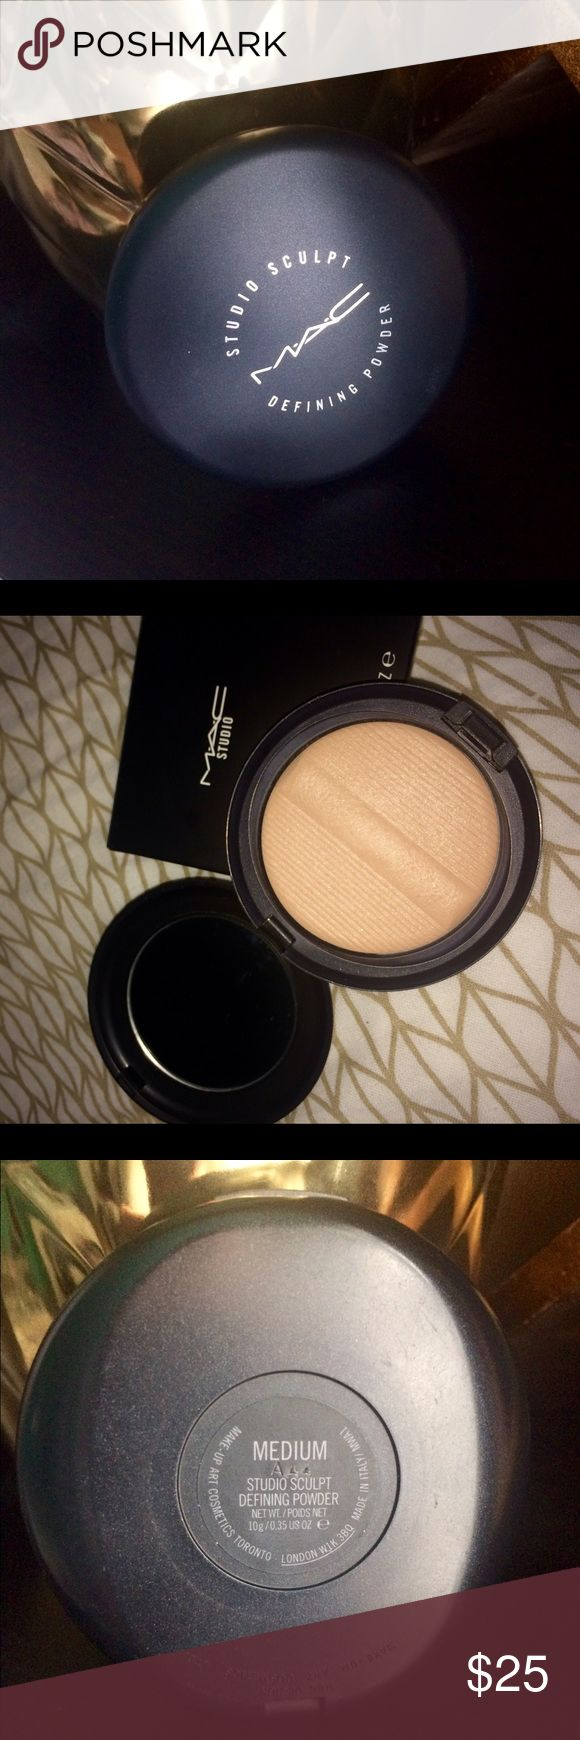 Mac studio sculpt defining powder Bought from Nordstrom but in the wrong color and tried it 2 times. Comes with the original box. Authentic Mac item. Original price $33. MAC Cosmetics Makeup Face Powder